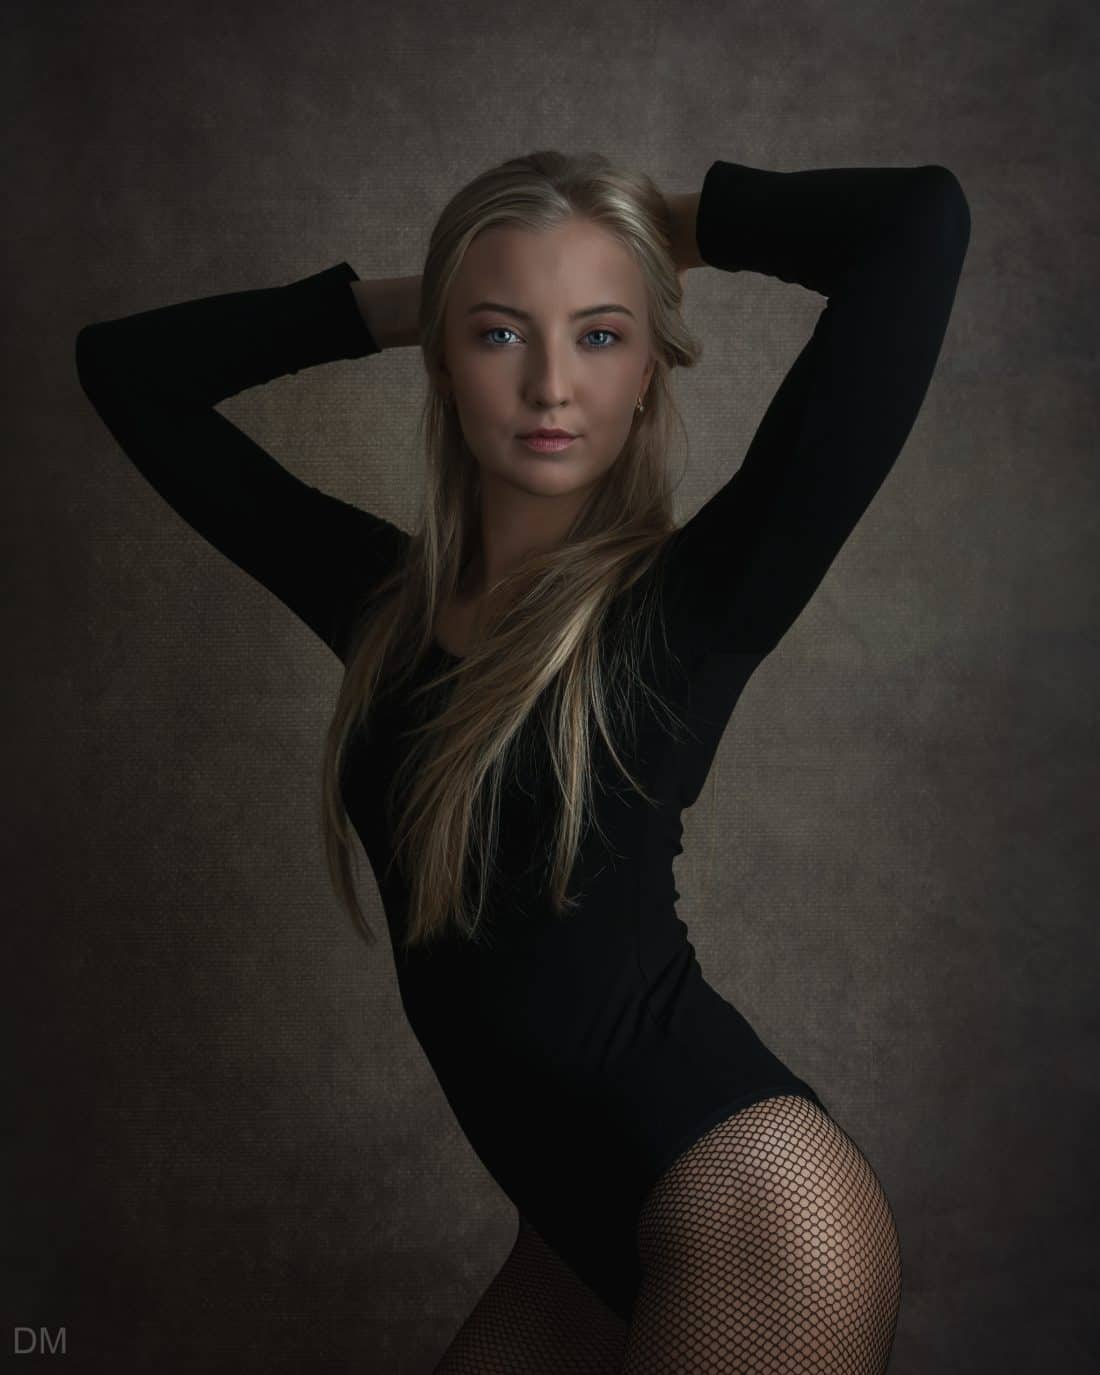 Photograph of a beautiful female model in a bodysuit.